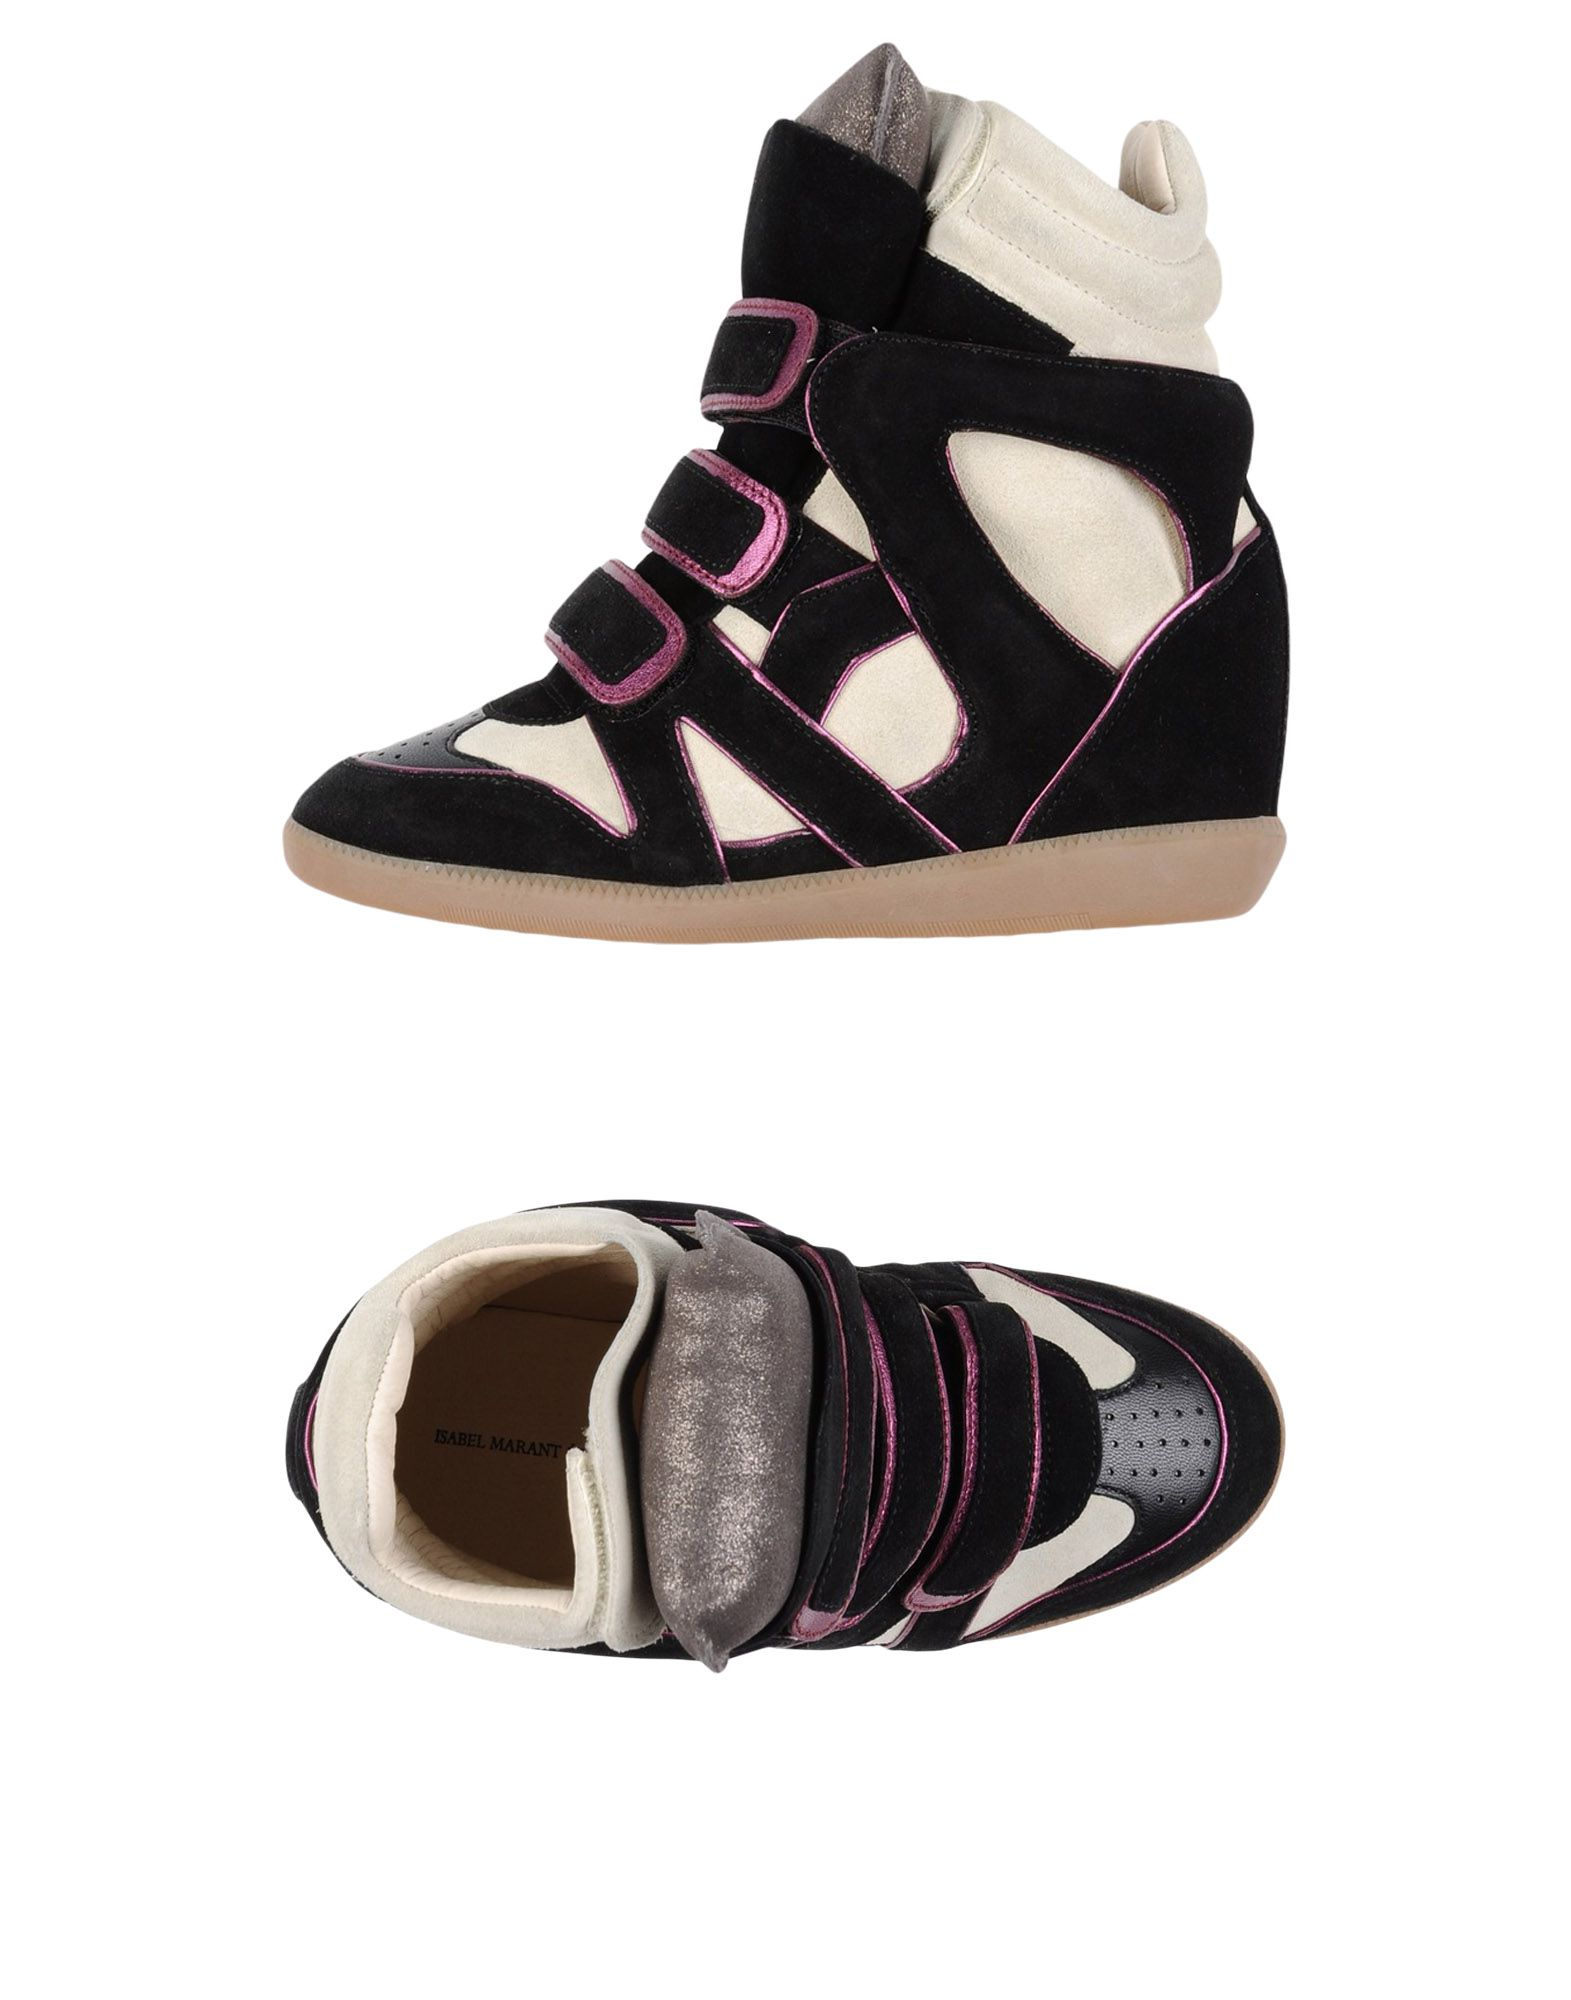 Sneakers femme isabel marant